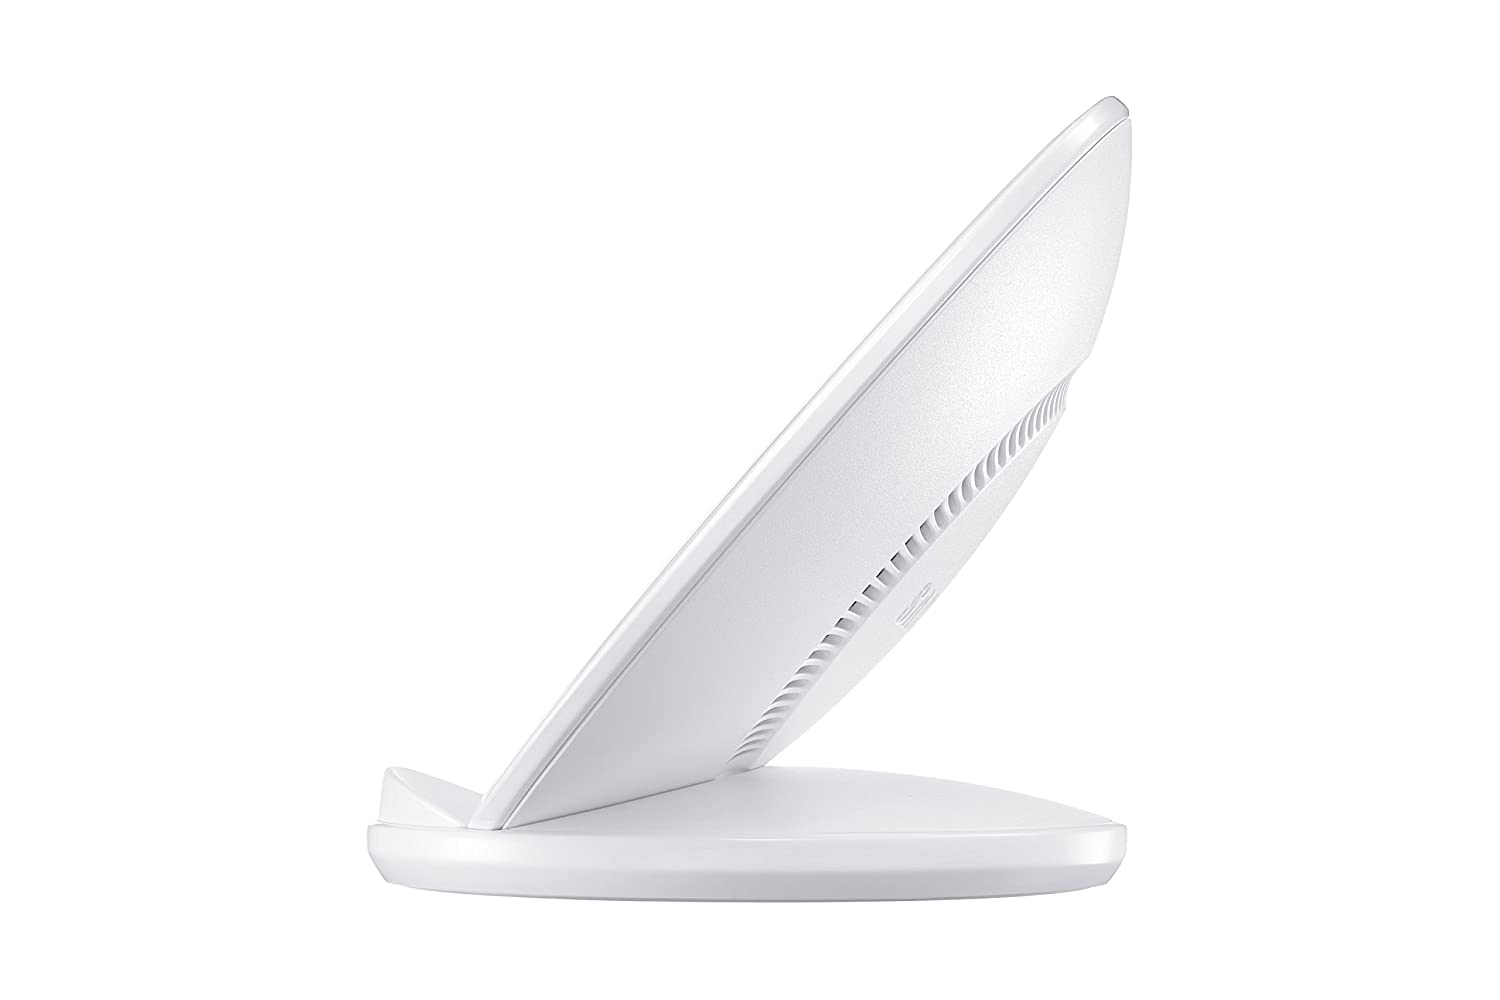 Samsung Fast Charge Wireless Charging Stand, White